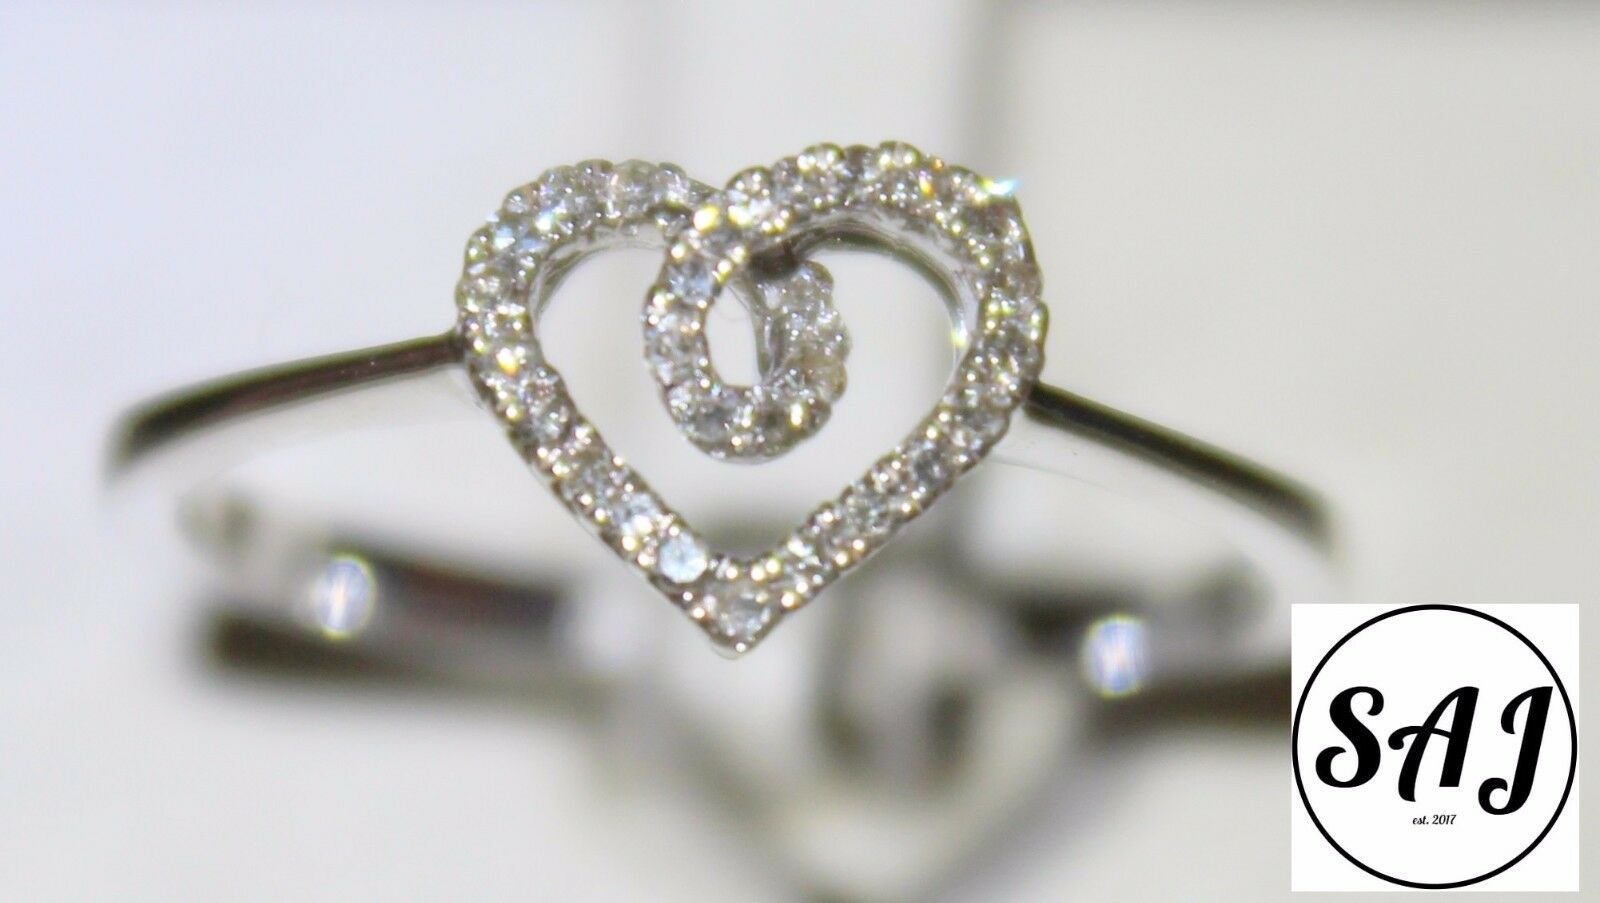 FANCY HEART SHAPED DIAMOND RING .11 CTW 10 KT. WHITE gold